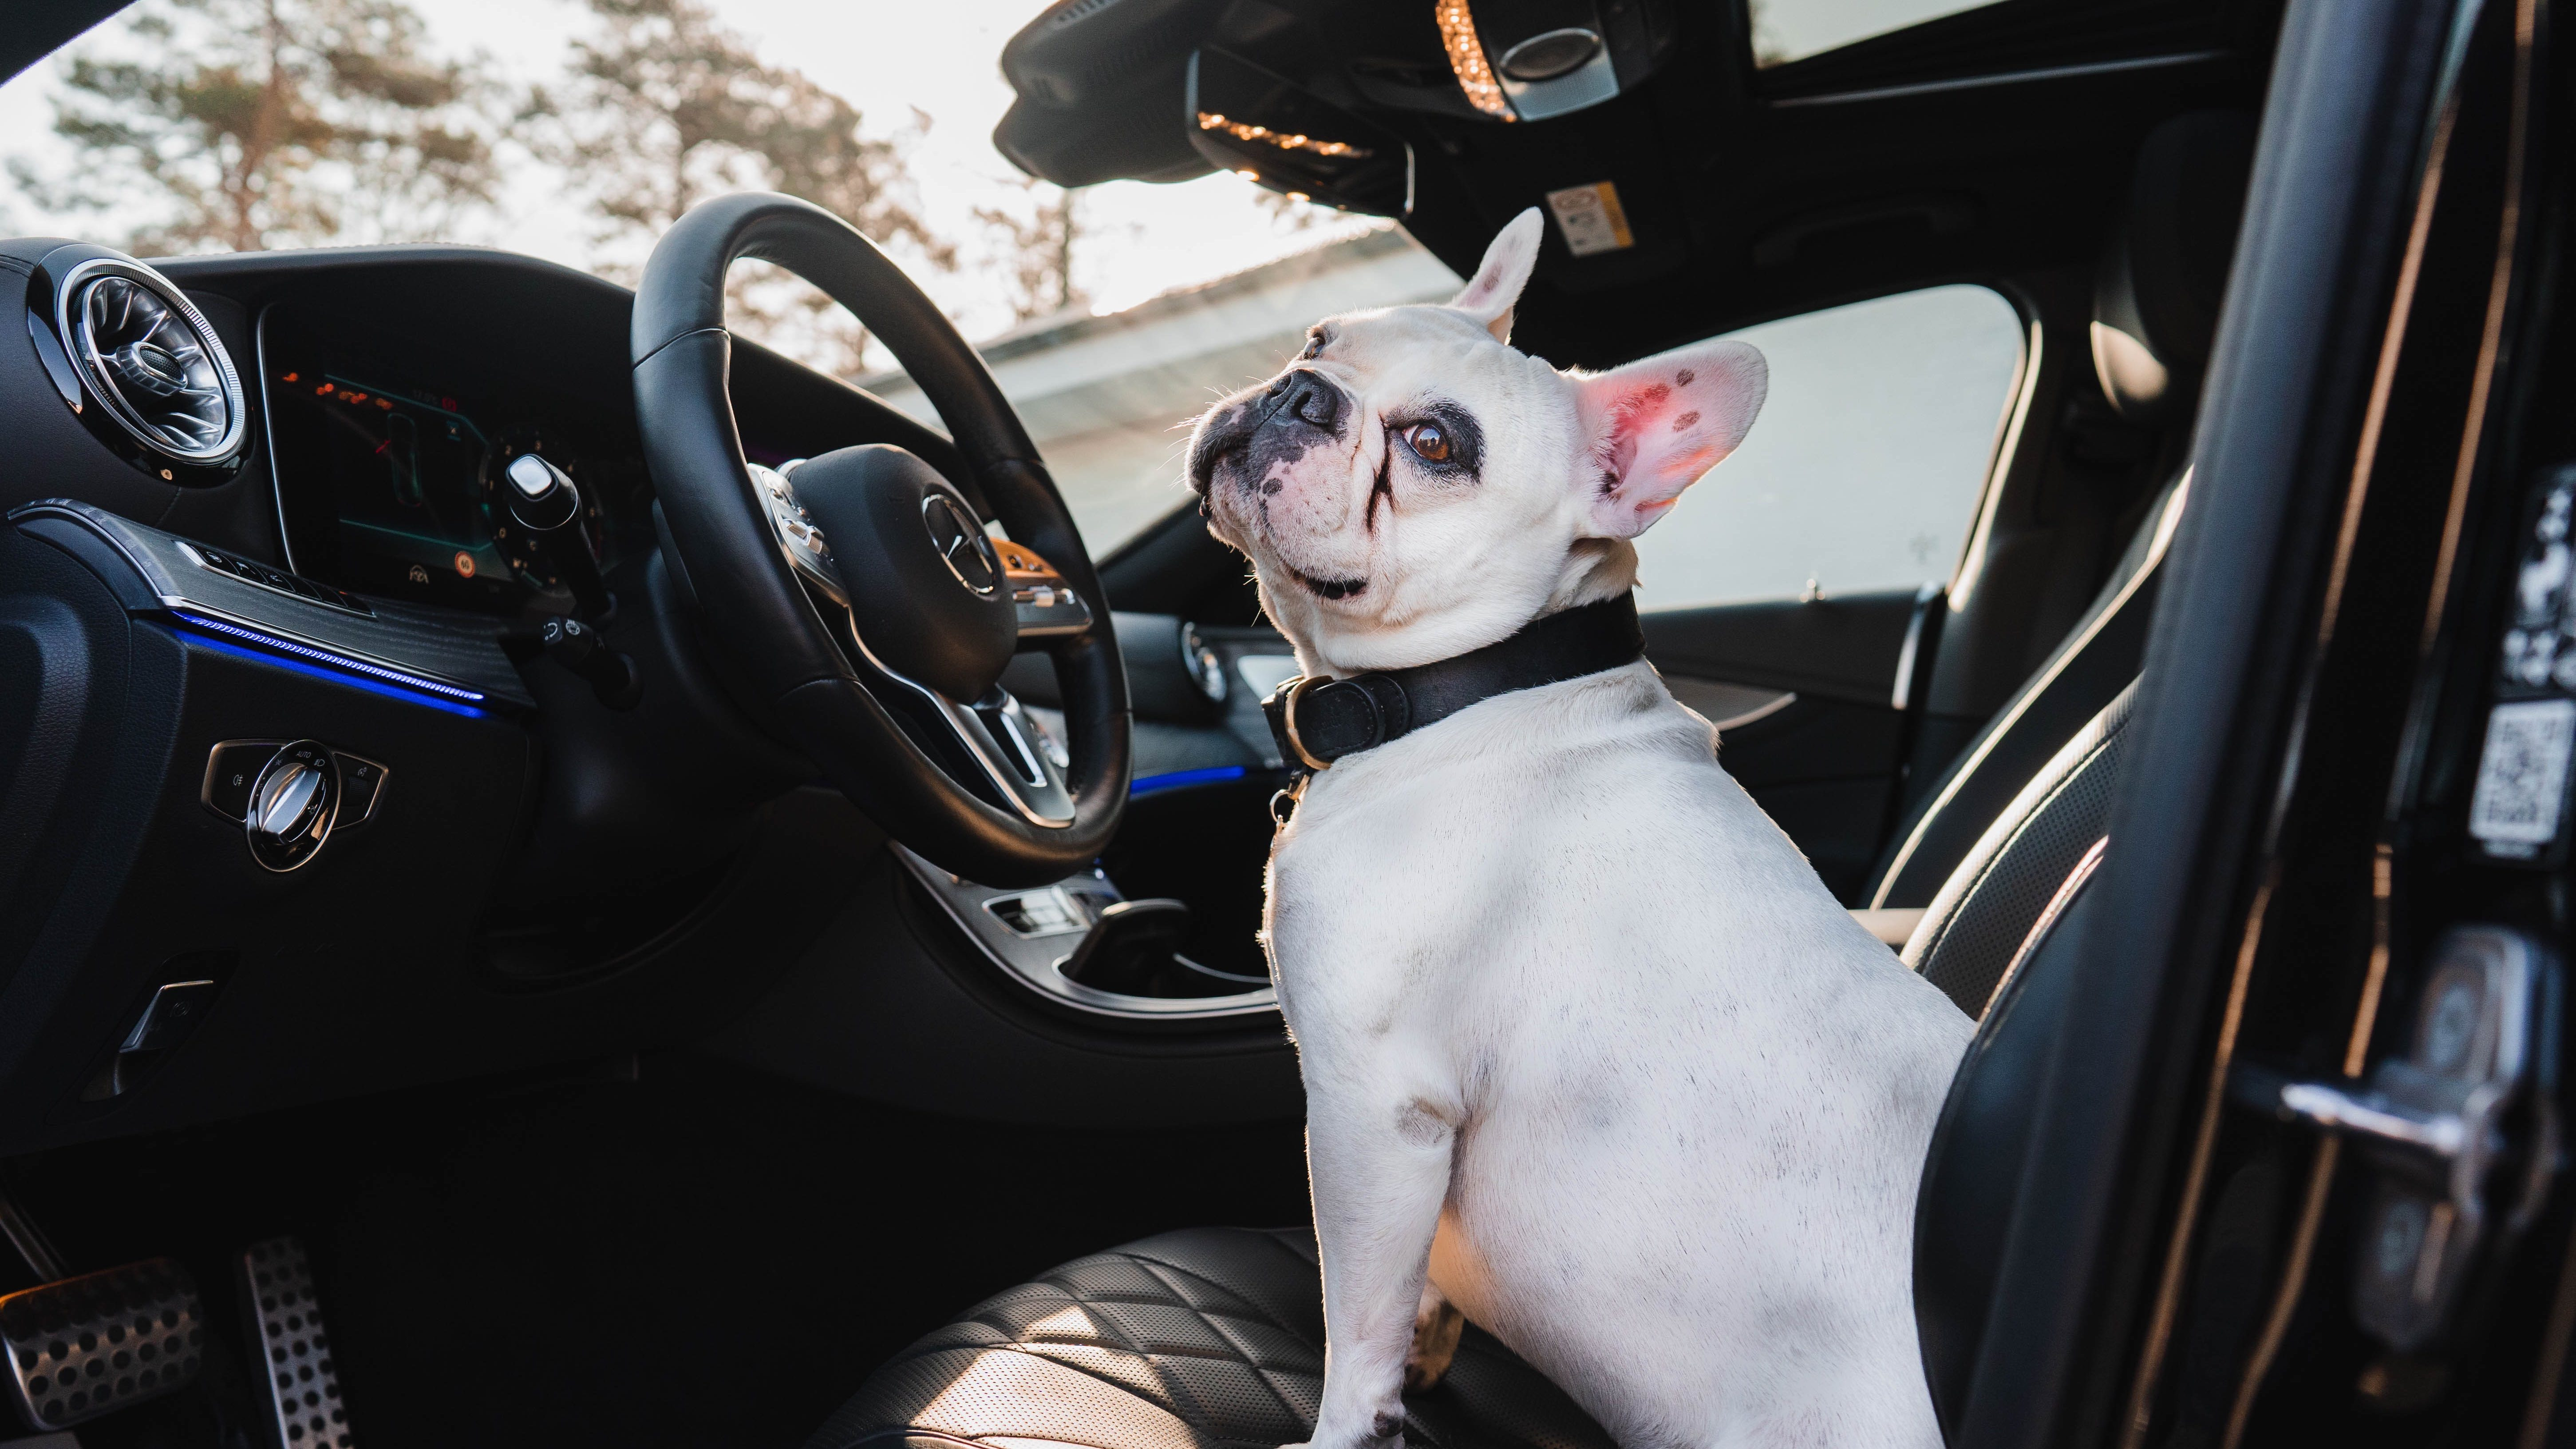 Dog sitting in a Mercedes-Benz car at the wheel.